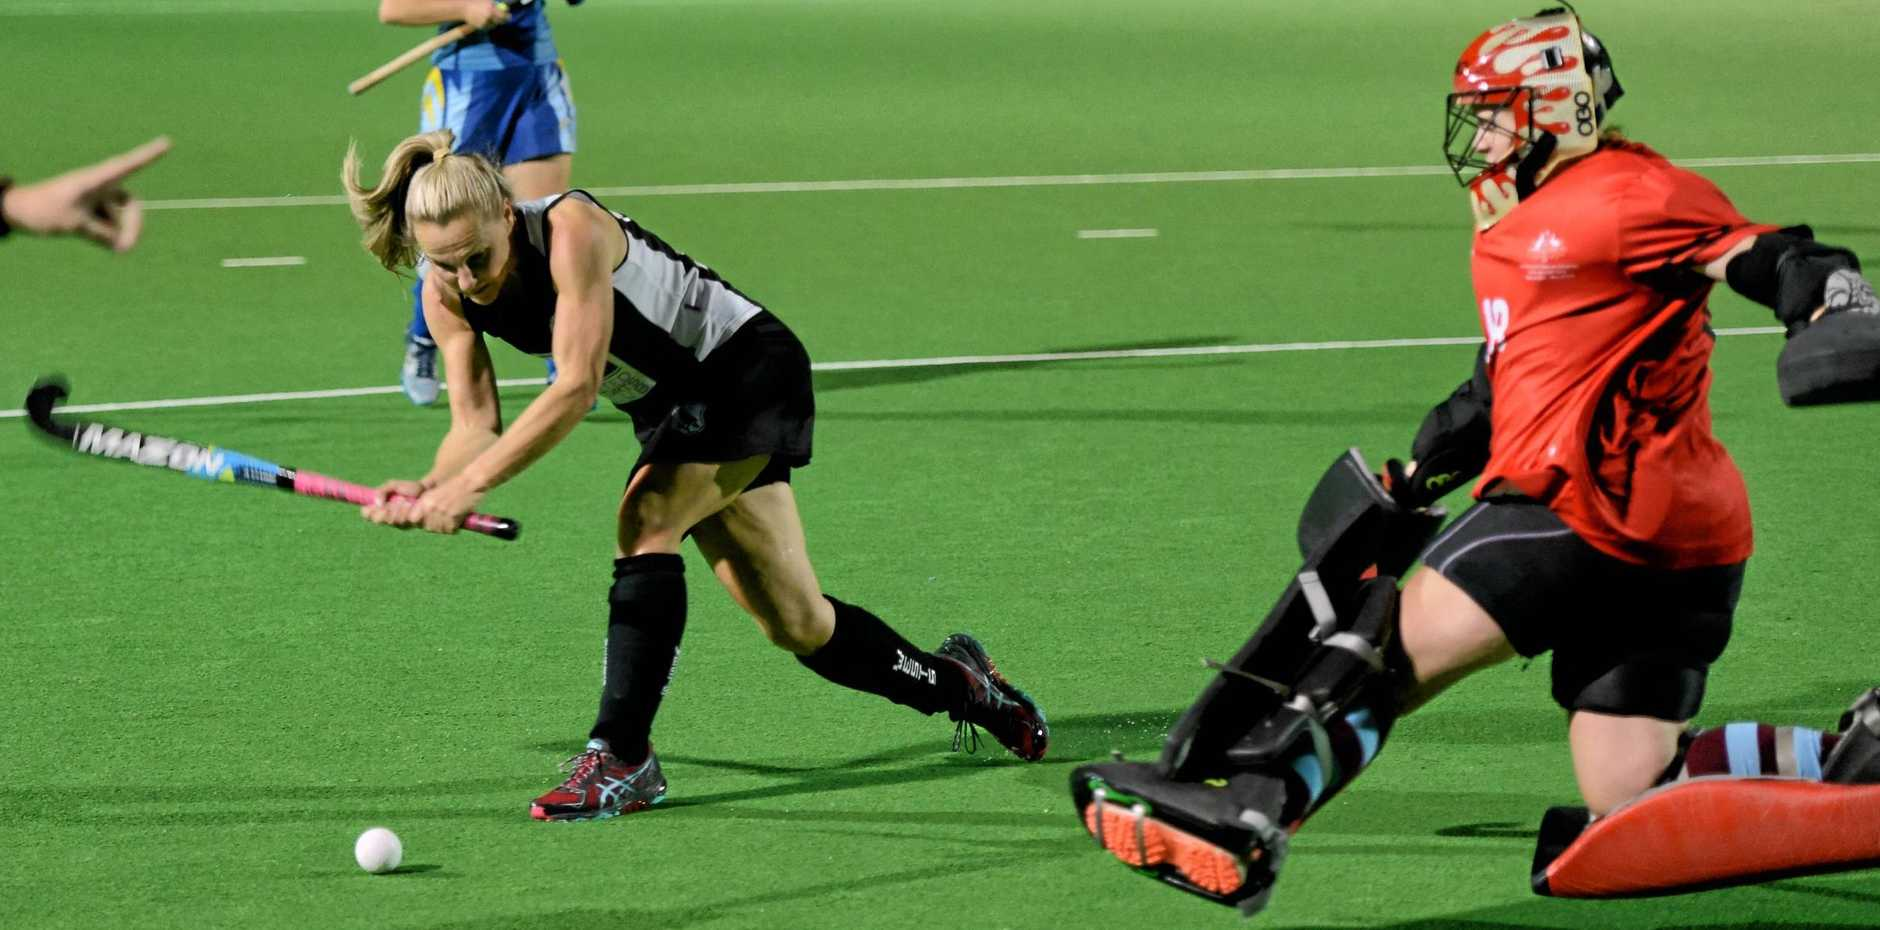 Hancocks goalkeeper and player of the final Shahna Hamment faces another mighty challenge from former international striker Amy Kickbusch in Saturday night's Ipswich A-Grade grand final.